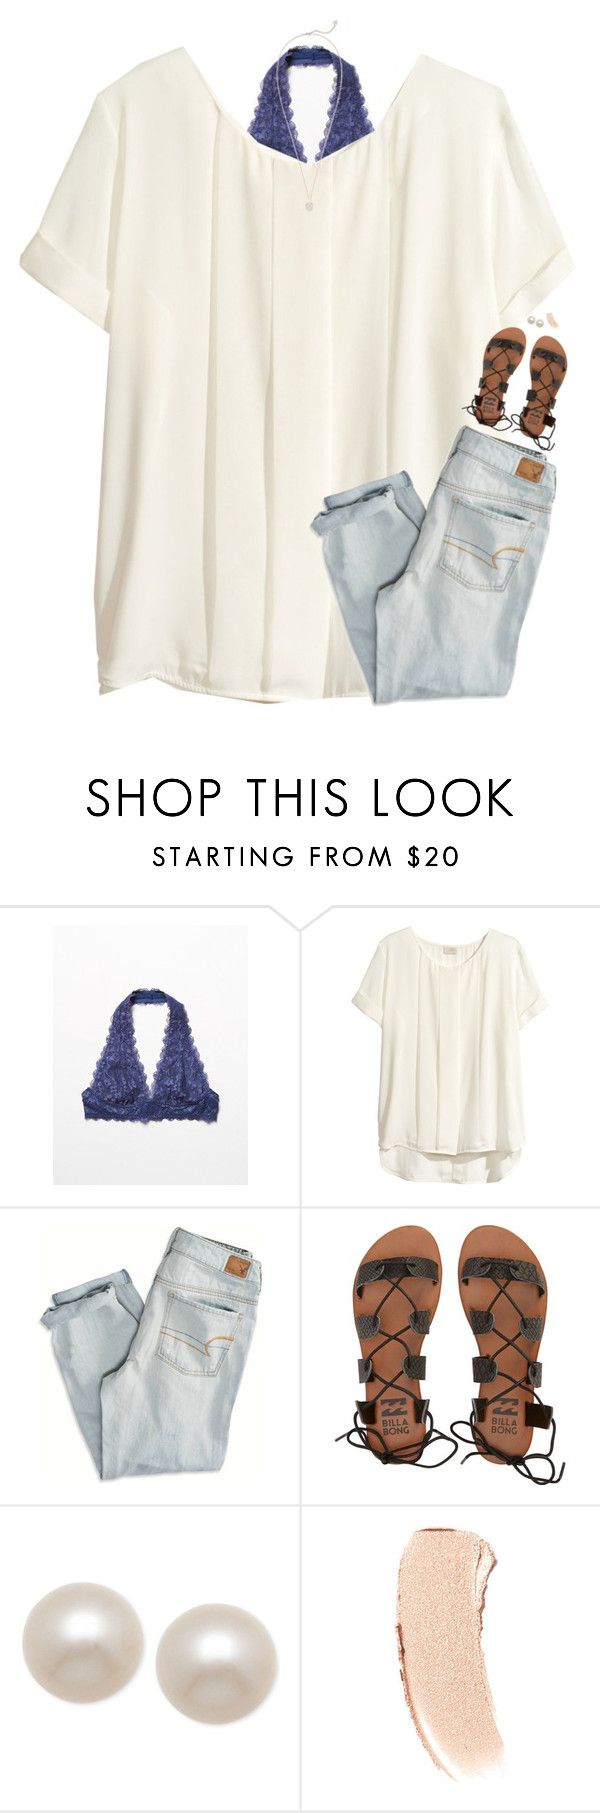 """any girl like you deserves a gentleman <333"" by classynsouthern ❤ liked on Polyvore featuring Free People, H&M, American Eagle Outfitters, Billabong, Honora, Bobbi Brown Cosmetics and Kendra Scott"